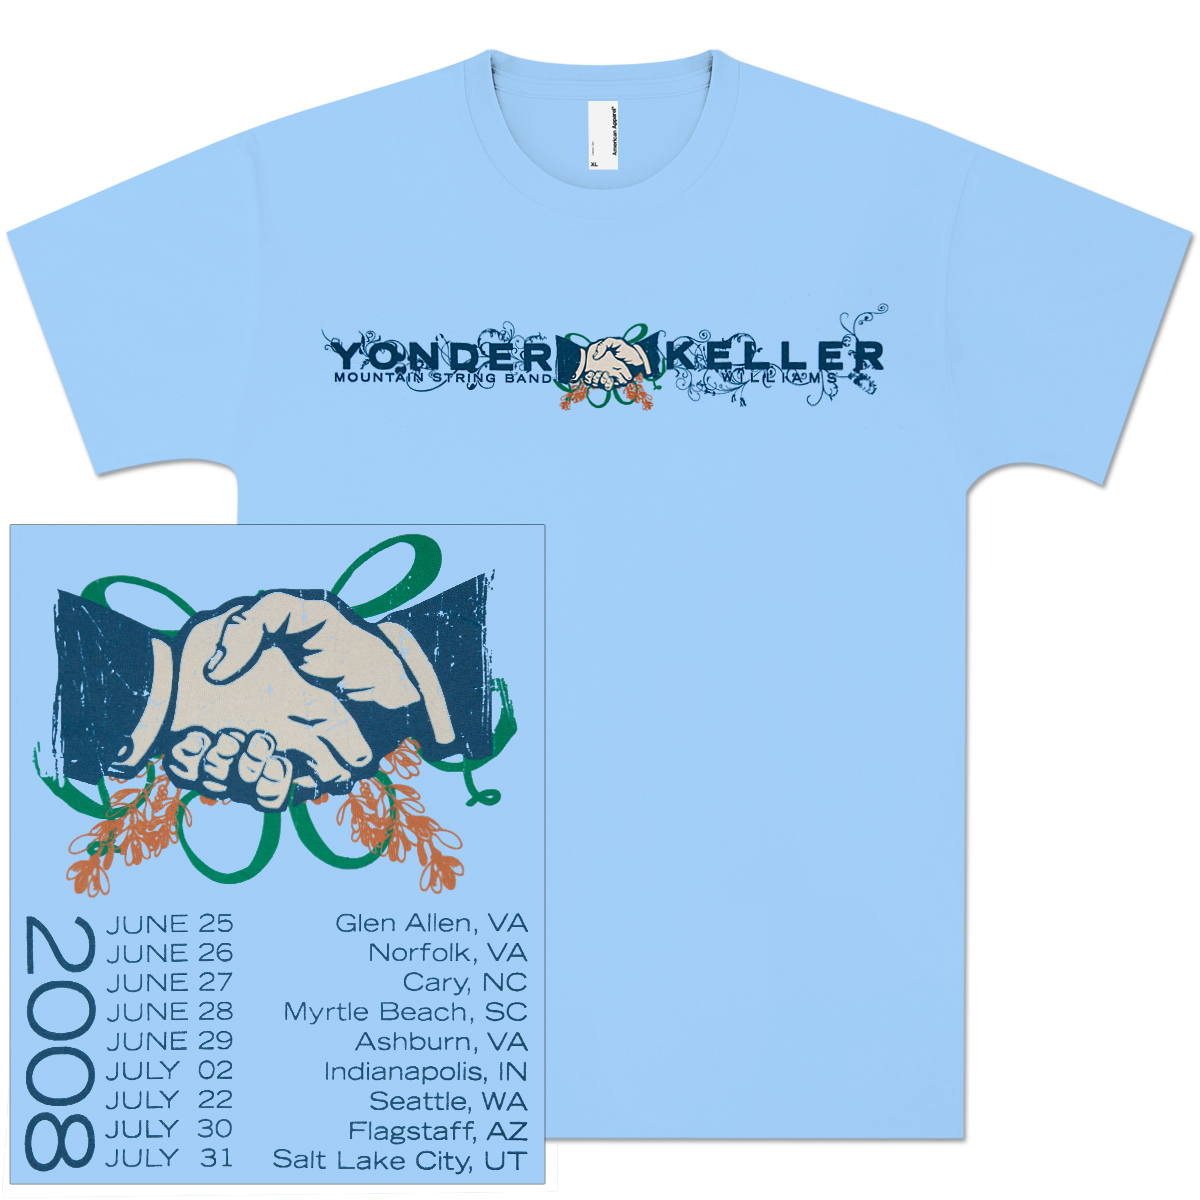 Keller Williams/Yonder Mountain String Band 2008 Summer Tour T-Shirt